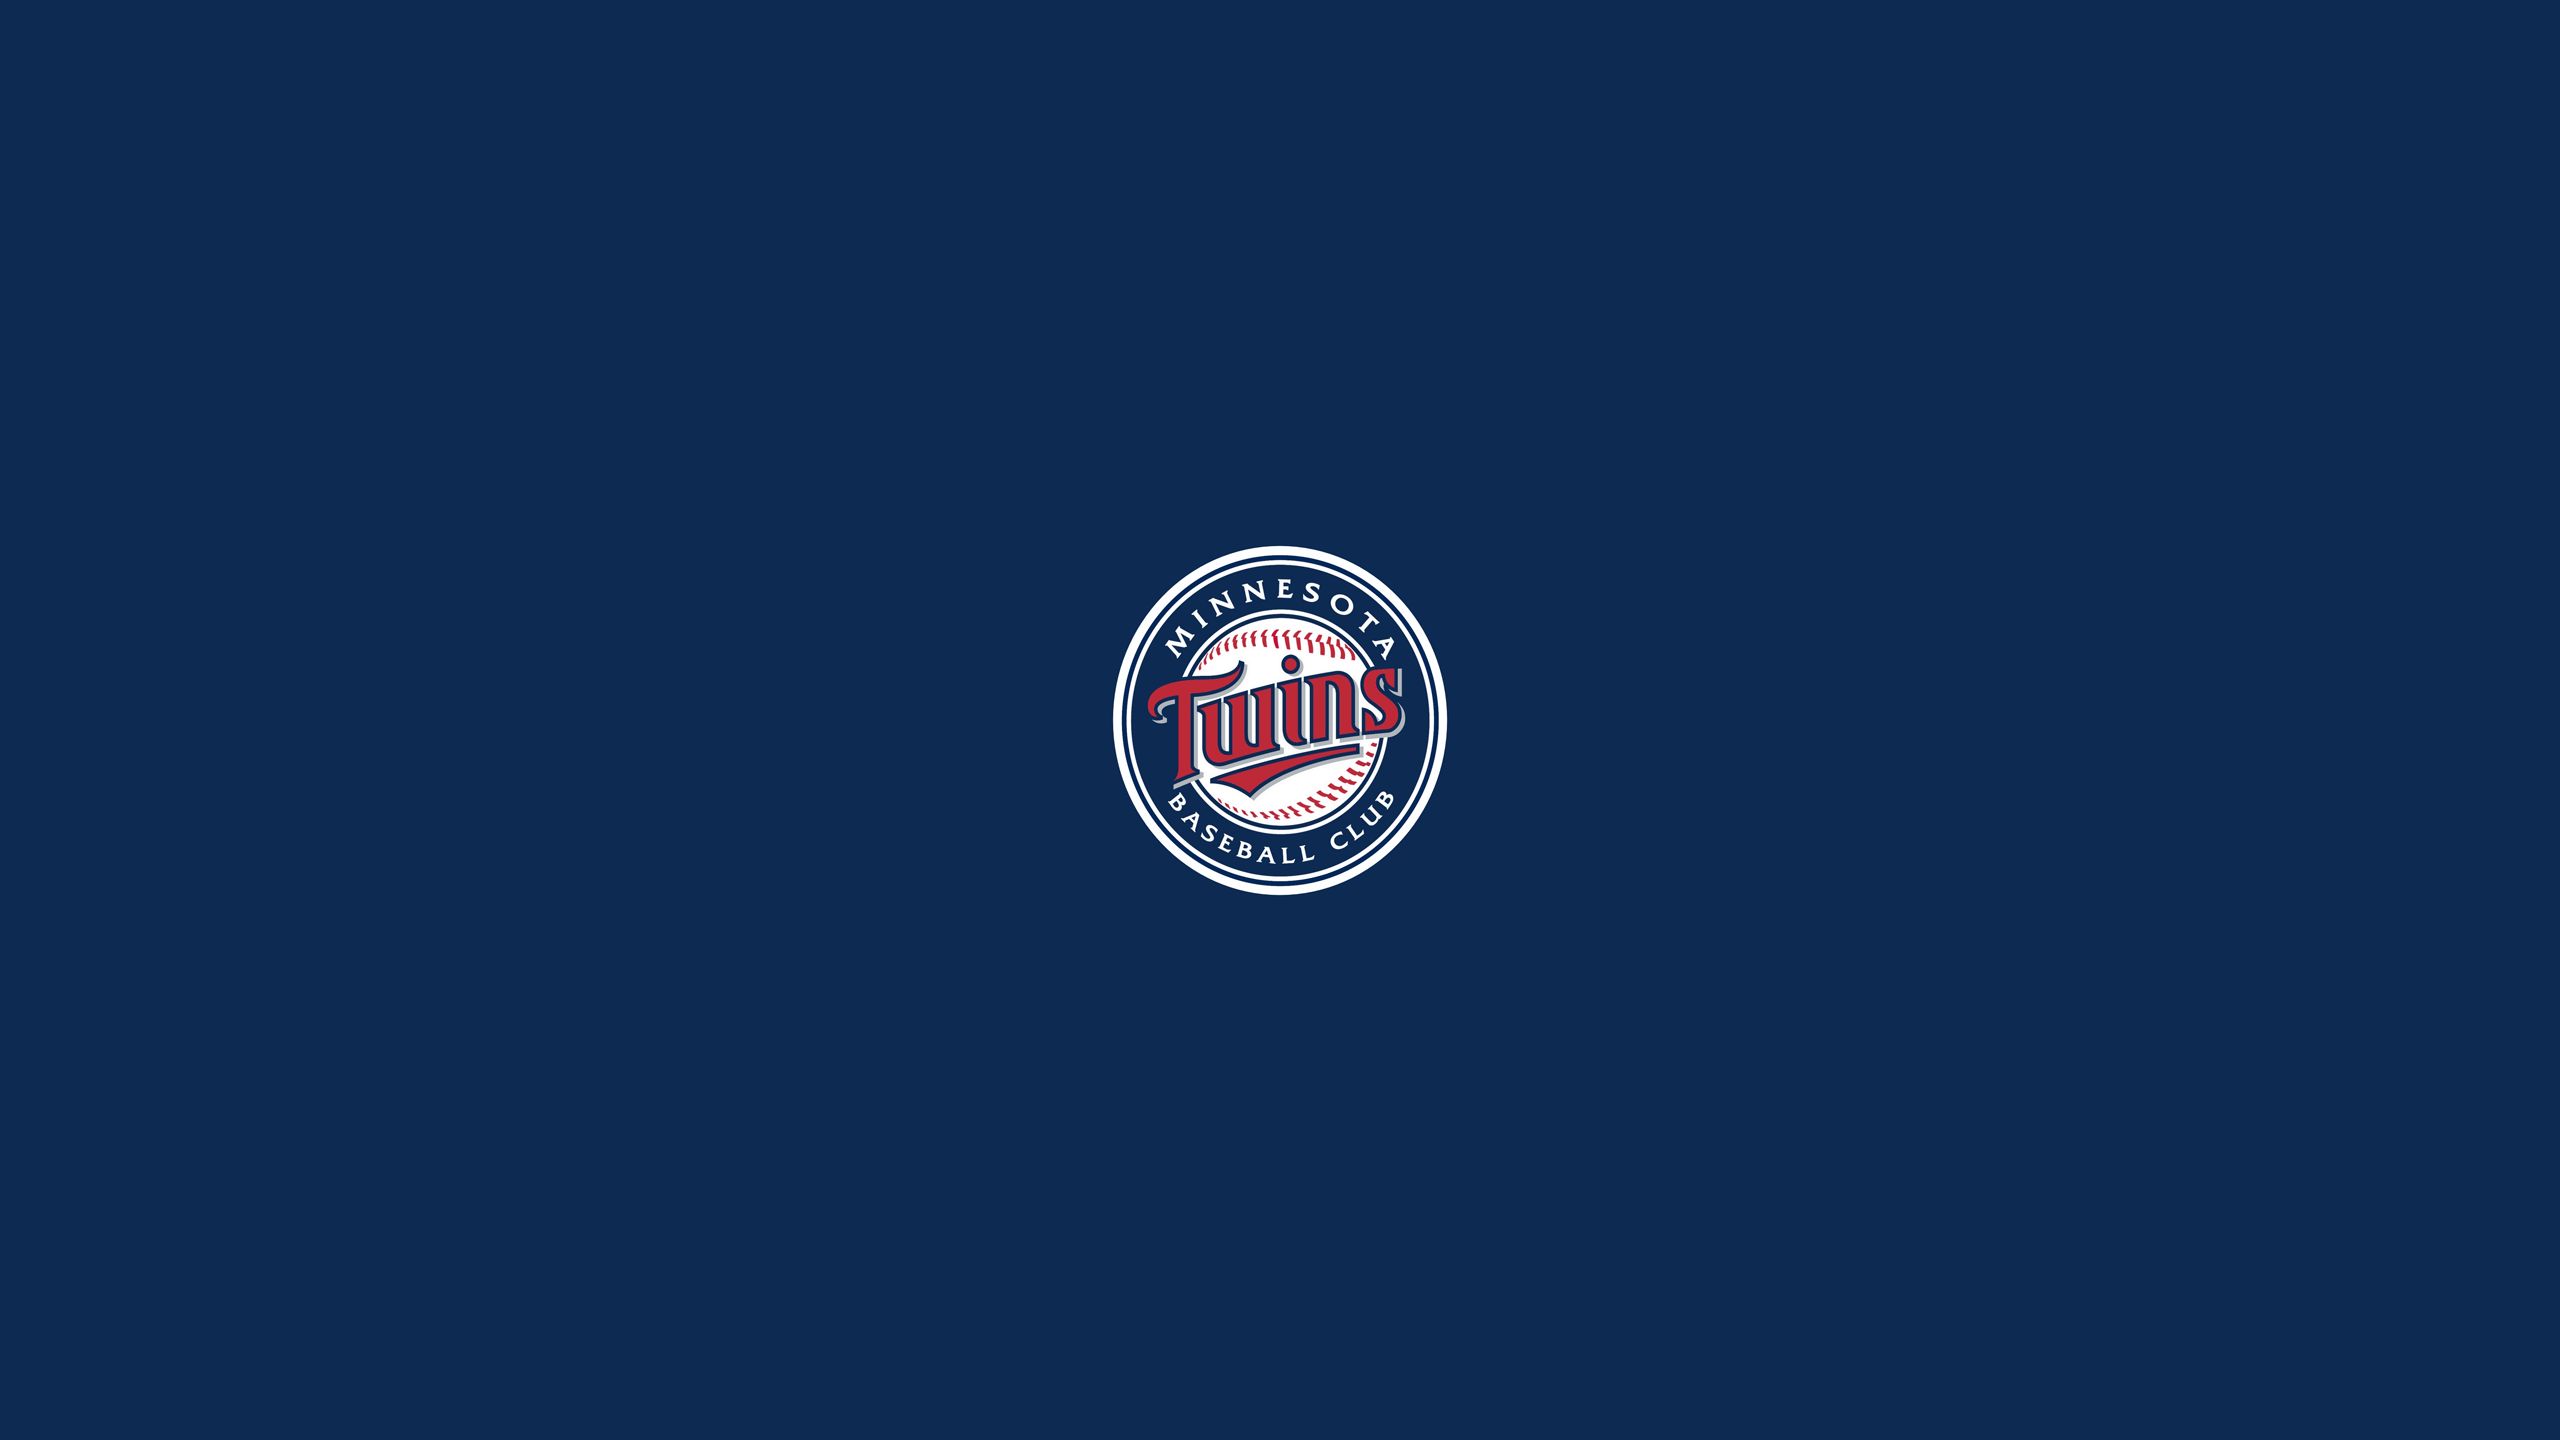 Minnesota Twins Wallpapers 2560x1440